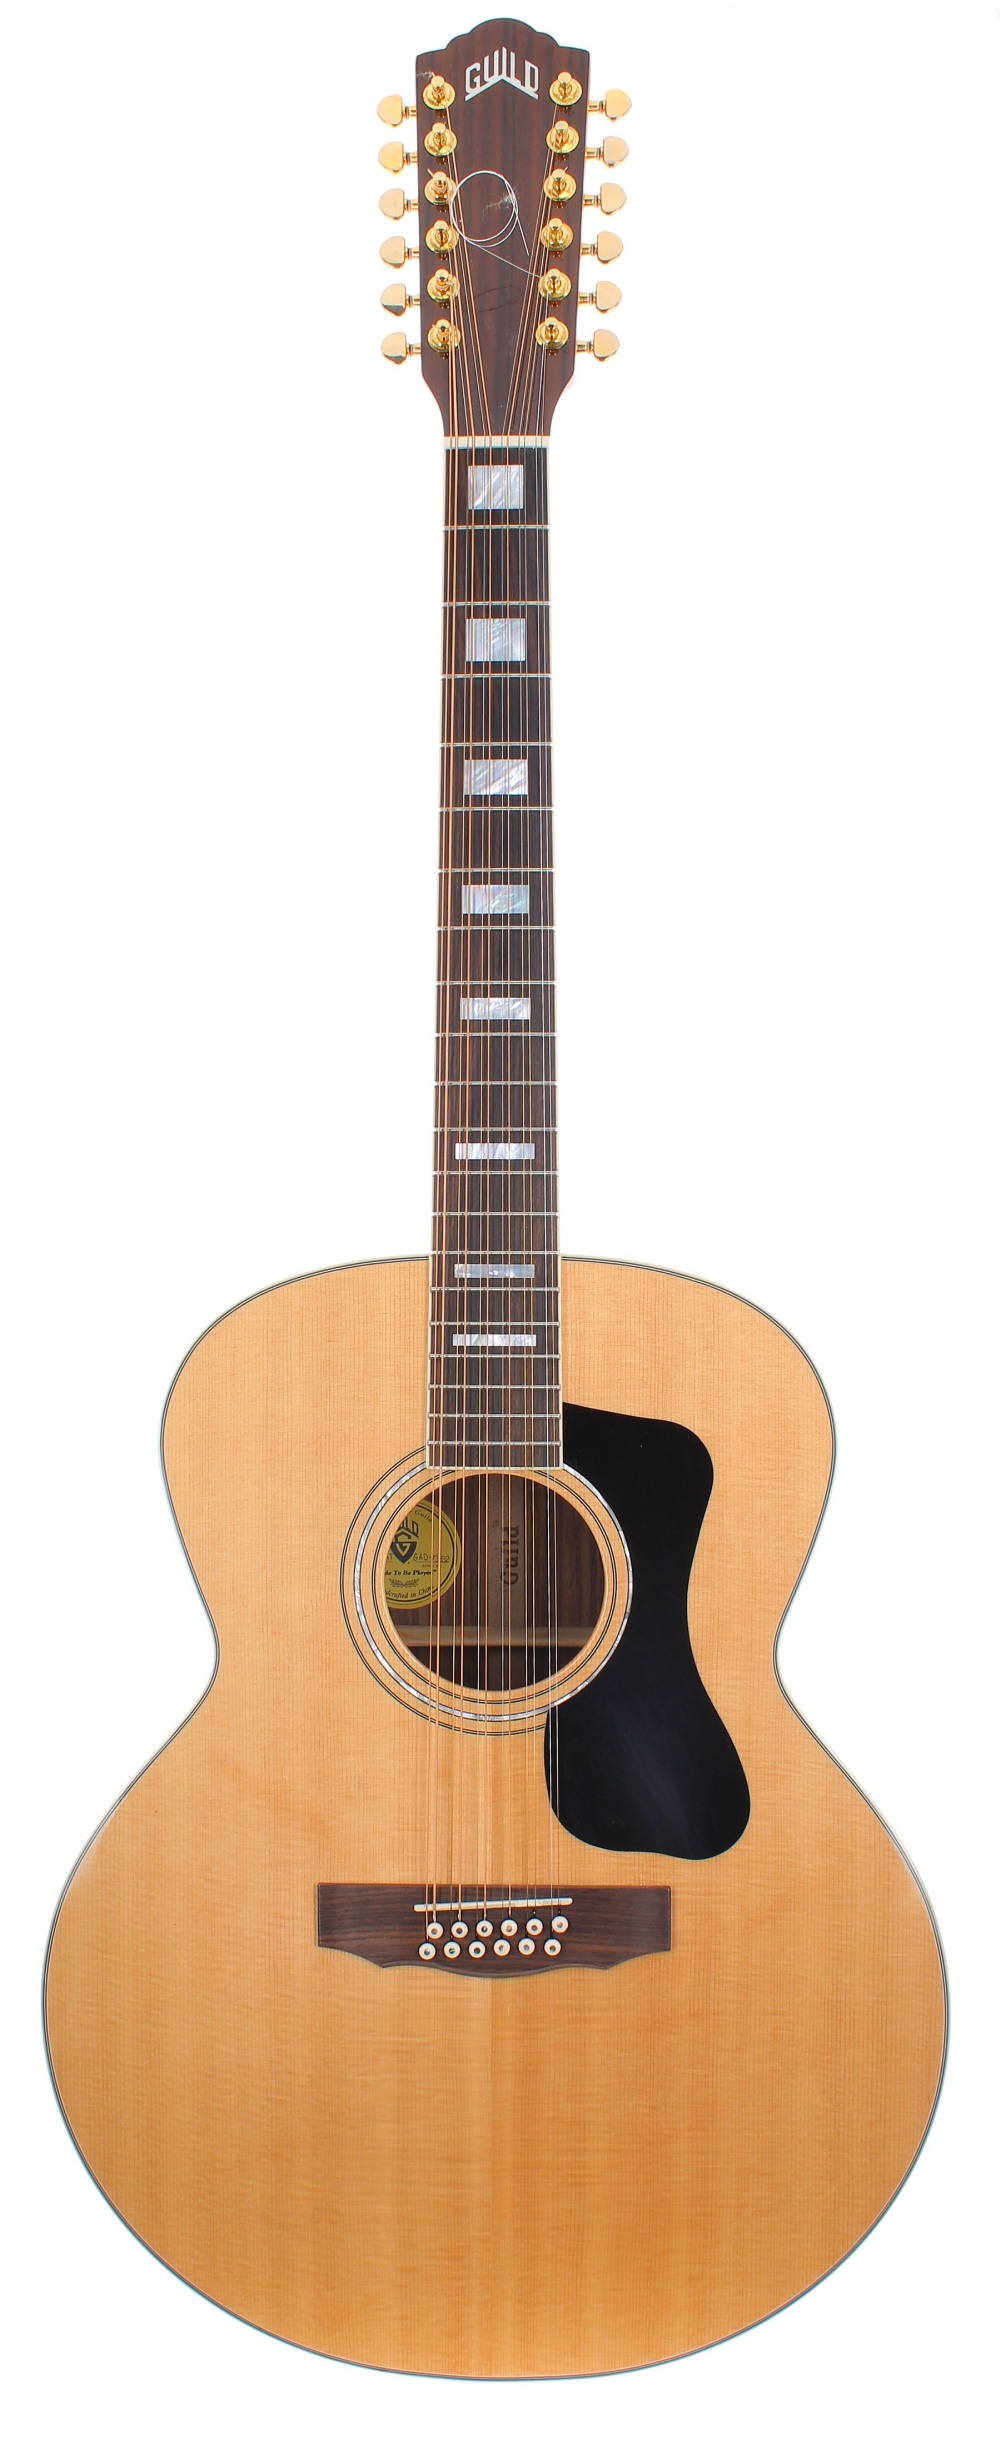 Guild F-1512 twelve string acoustic guitar, made in China, ser. no. GAD-xxxx2; Back and sides: